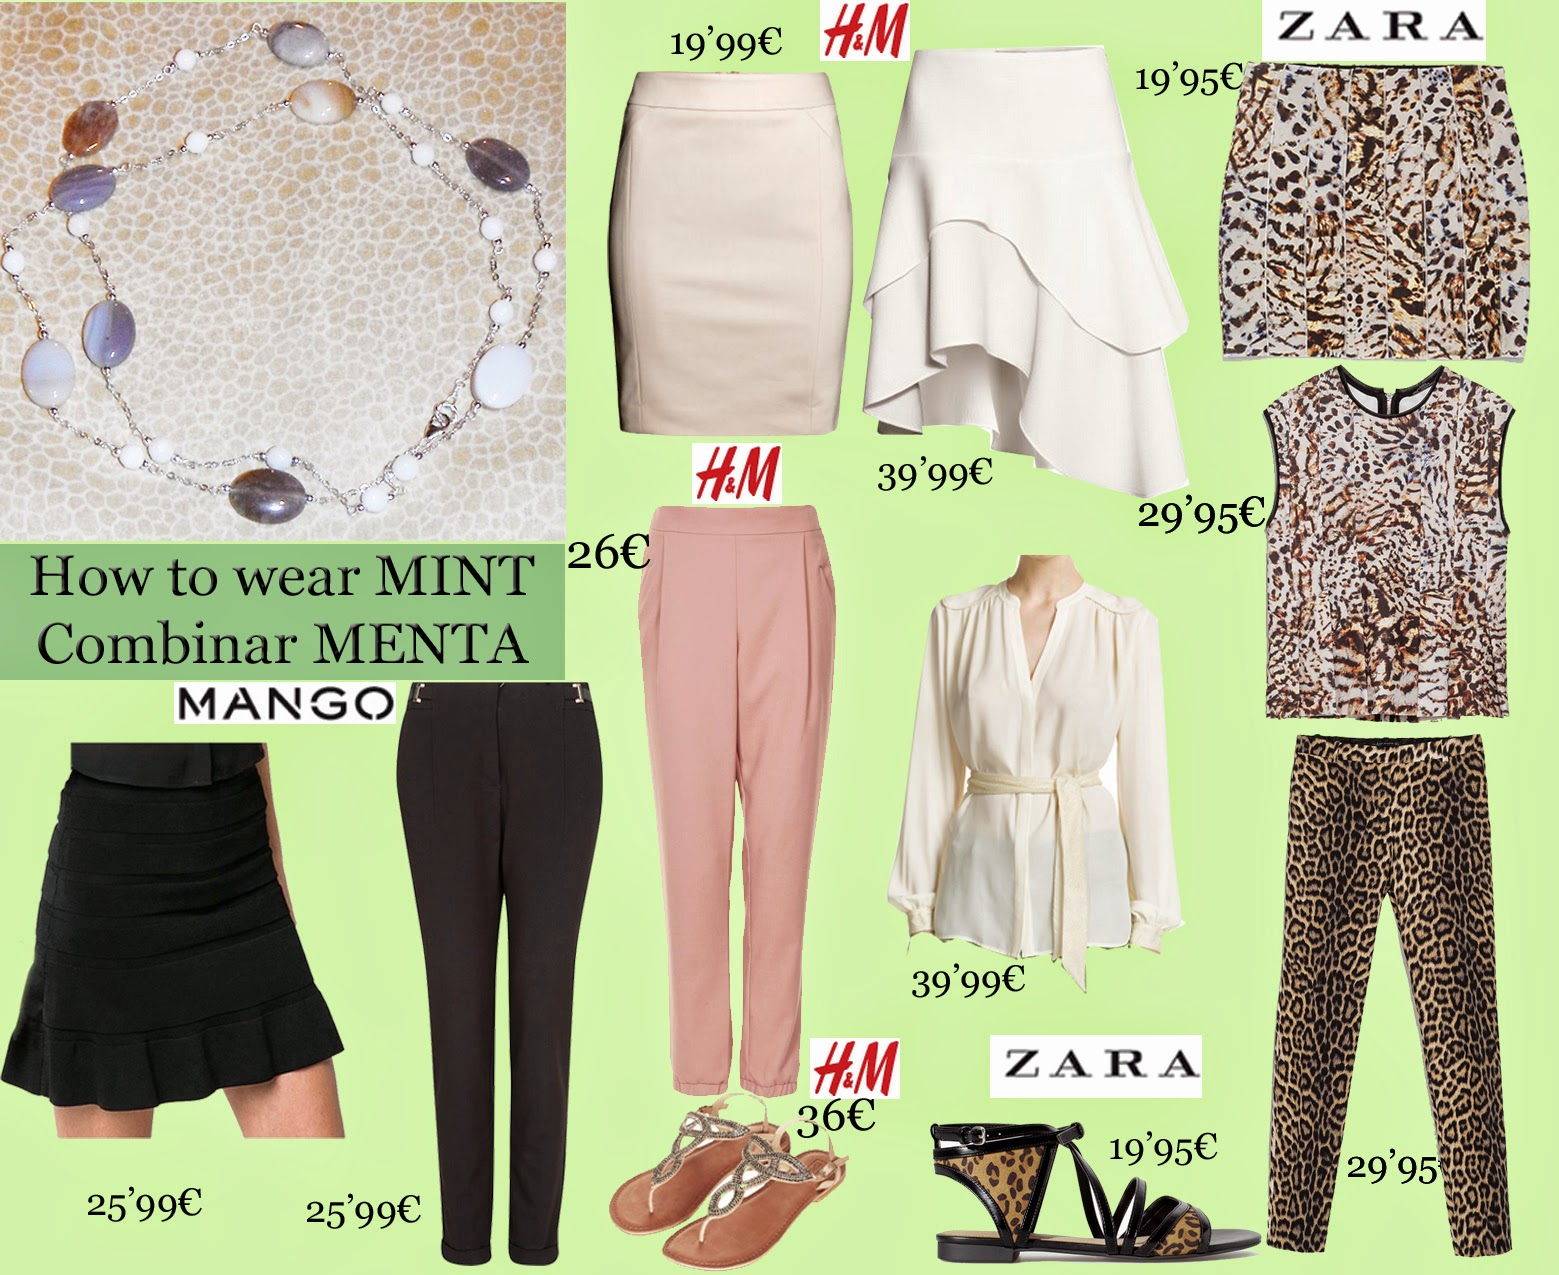 How to Wear Mint, Combinar Menta, Mint, Mango, Zara, H&M, Rombie, Topshop, American Aparel, pink, black, white, coral, Leopard, brujaness